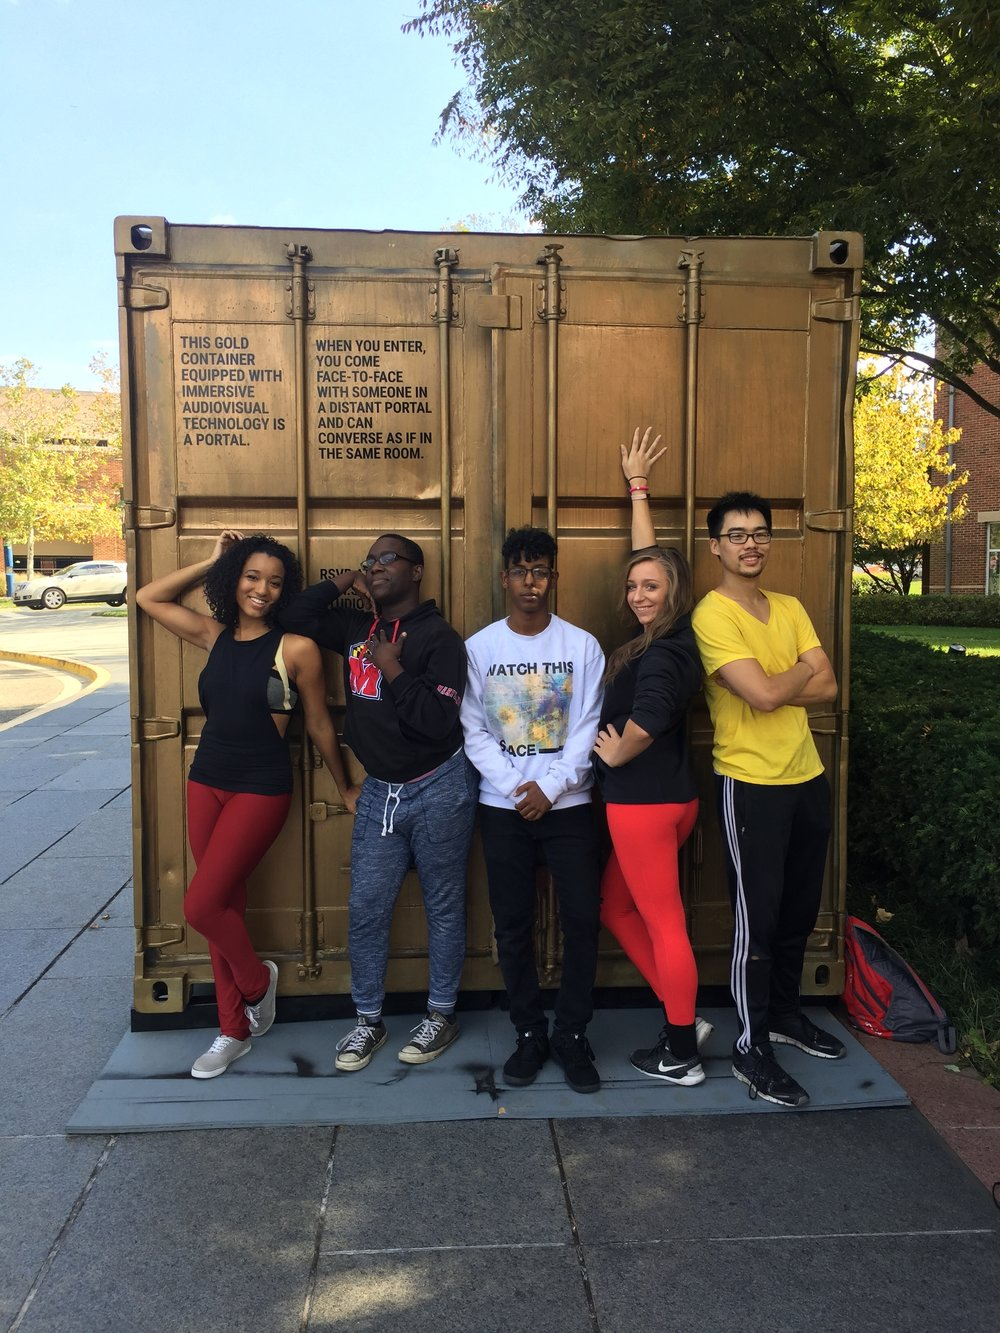 Students from the University of Maryland dance program after performing in their Portal